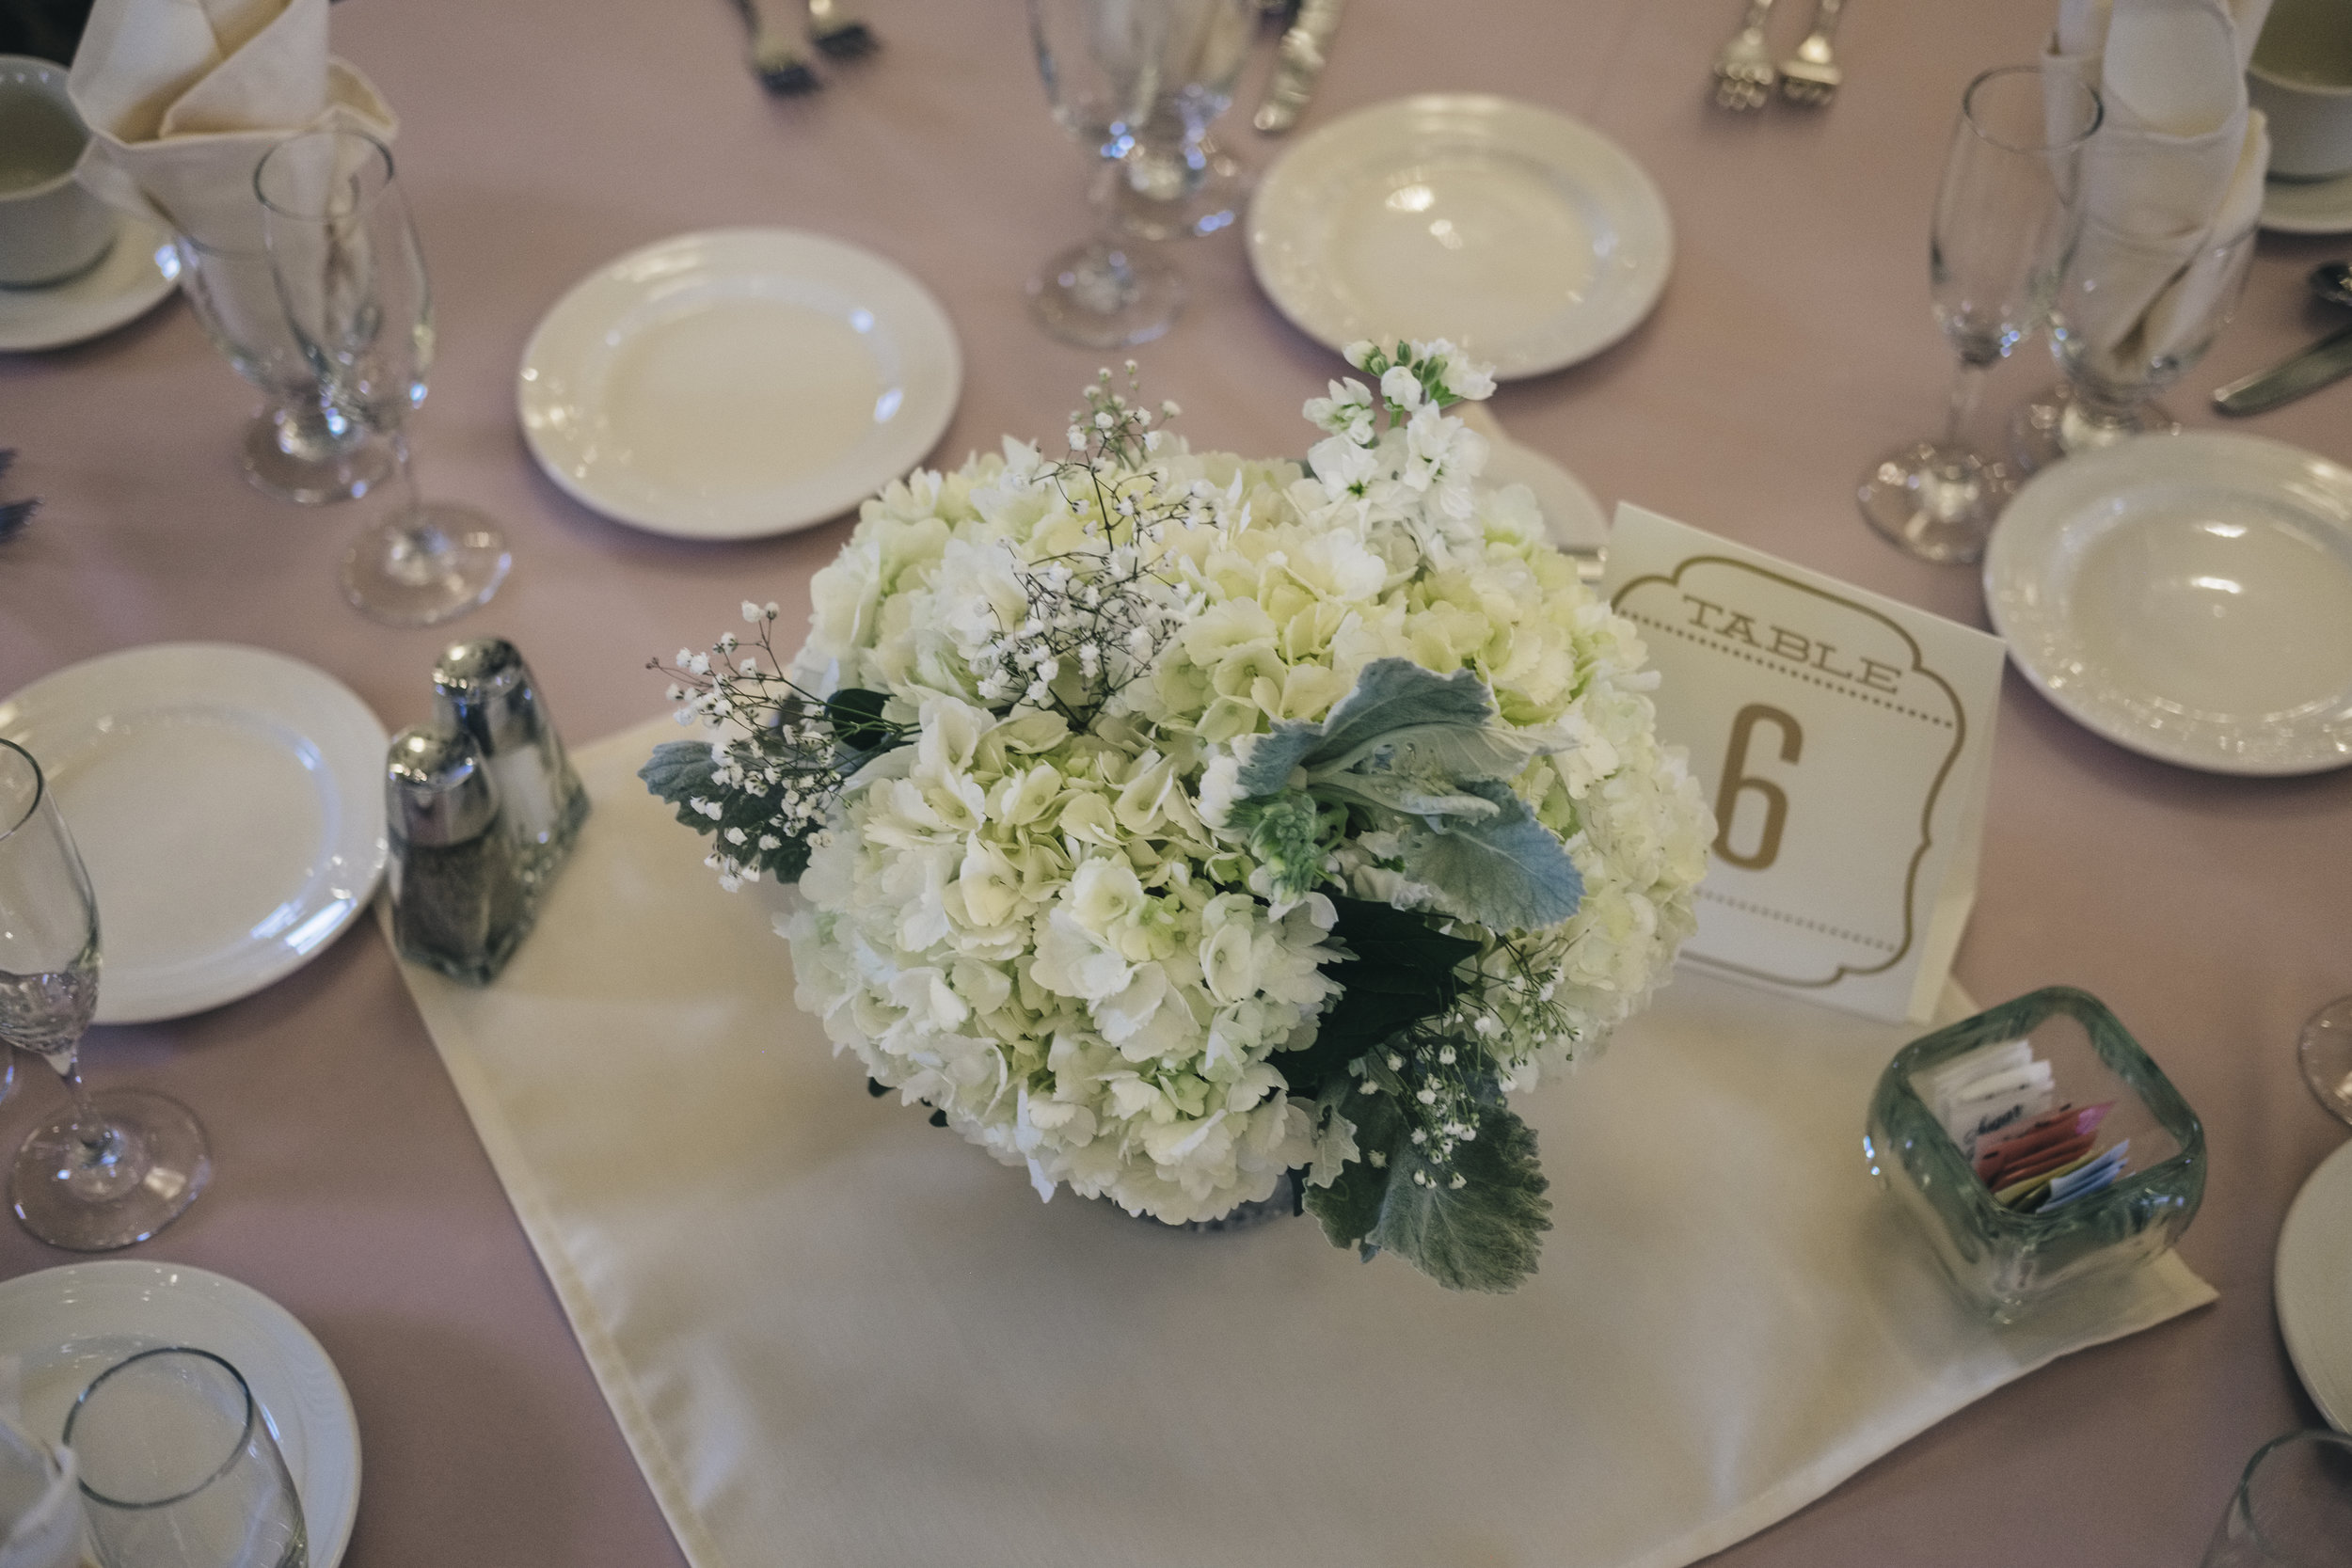 Floral Centerpiece at Wedding with La Boutique Nostalgie and Toledo Wedding Photographers